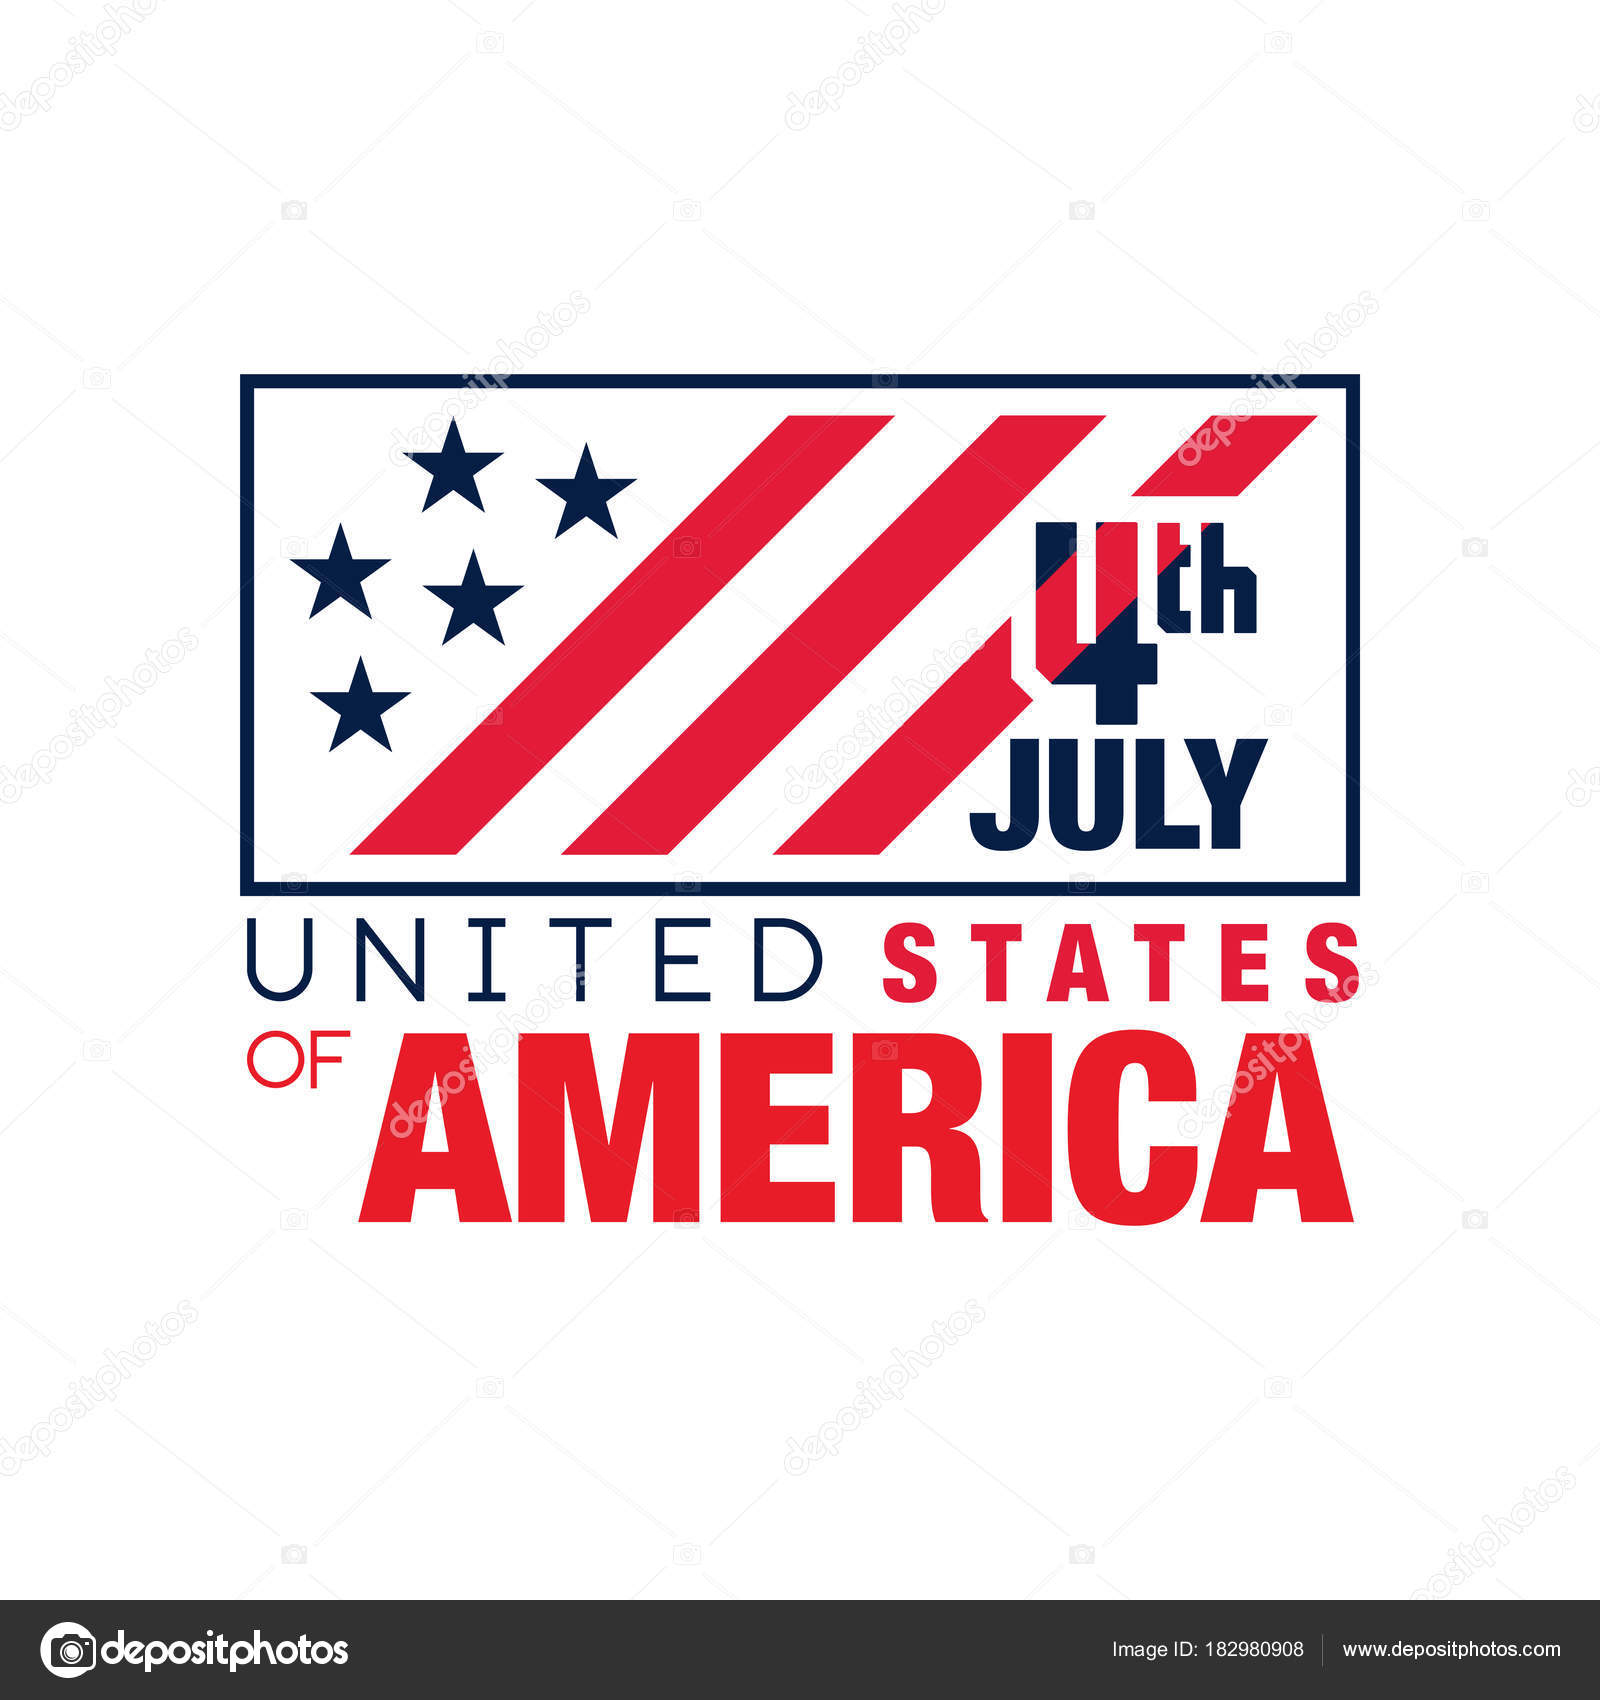 Creative monochrome emblem with american flag happy 4th of july creative monochrome emblem with american flag happy 4th of july usa independence day national holiday graphic design for logo banner or greeting card m4hsunfo